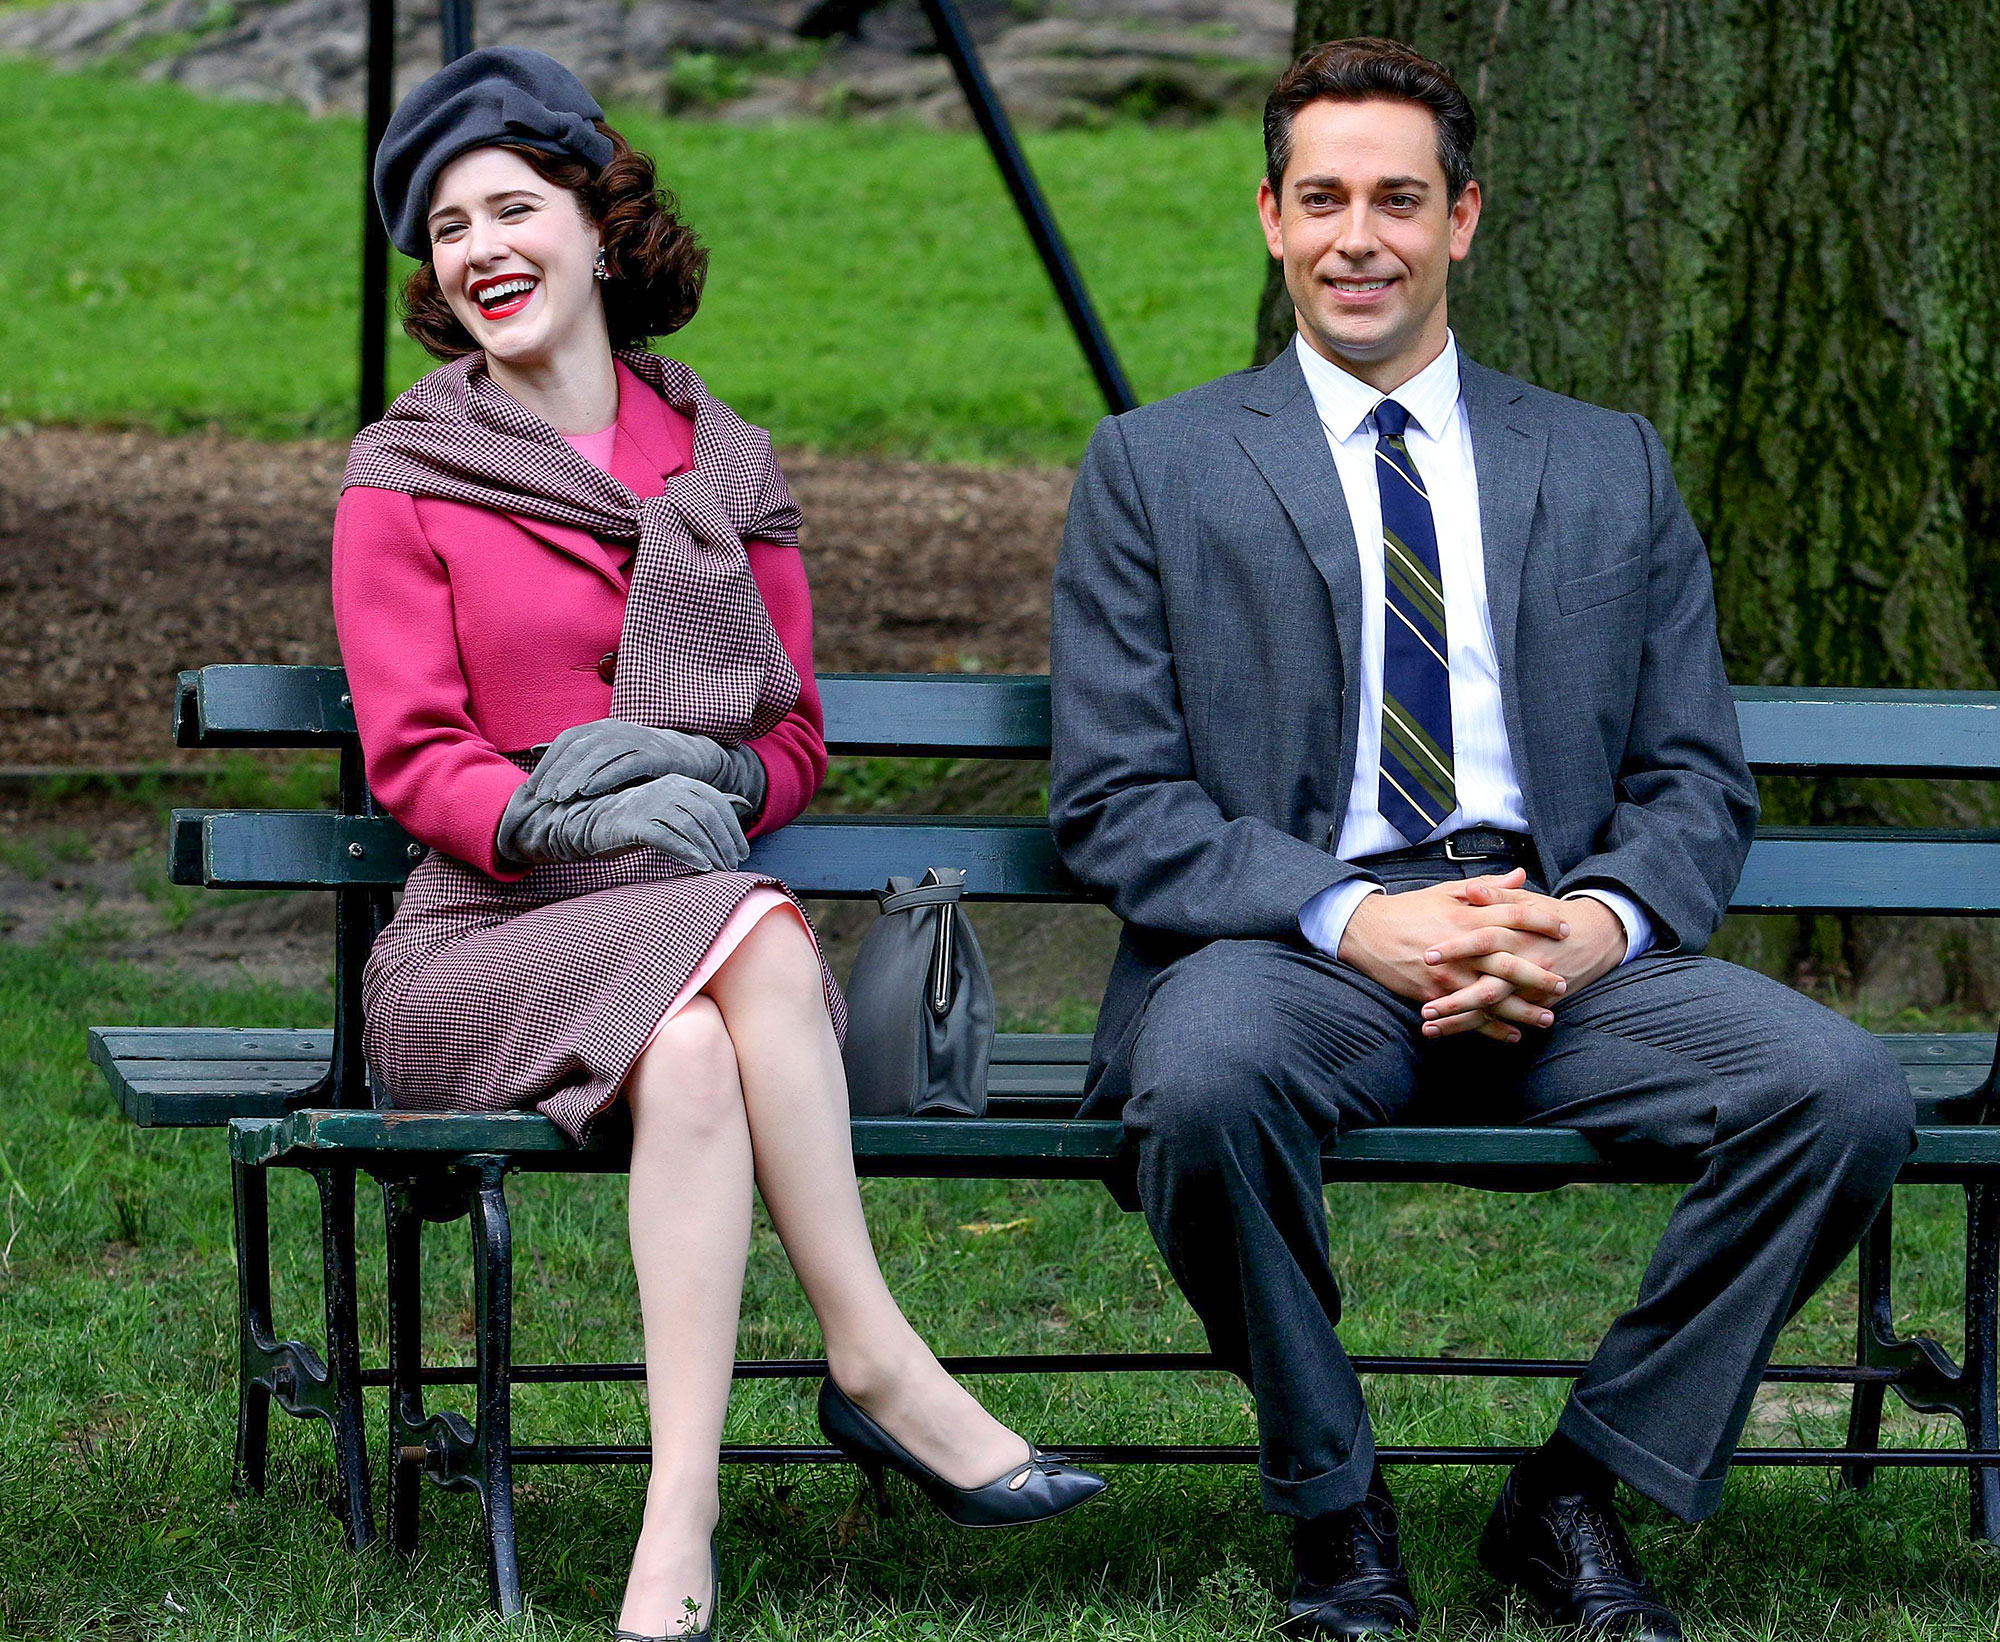 """Rachel Brosnahan and Zachary Levi filming """"The Marvelous Mrs. Maisel"""" in Central Park, NYC"""